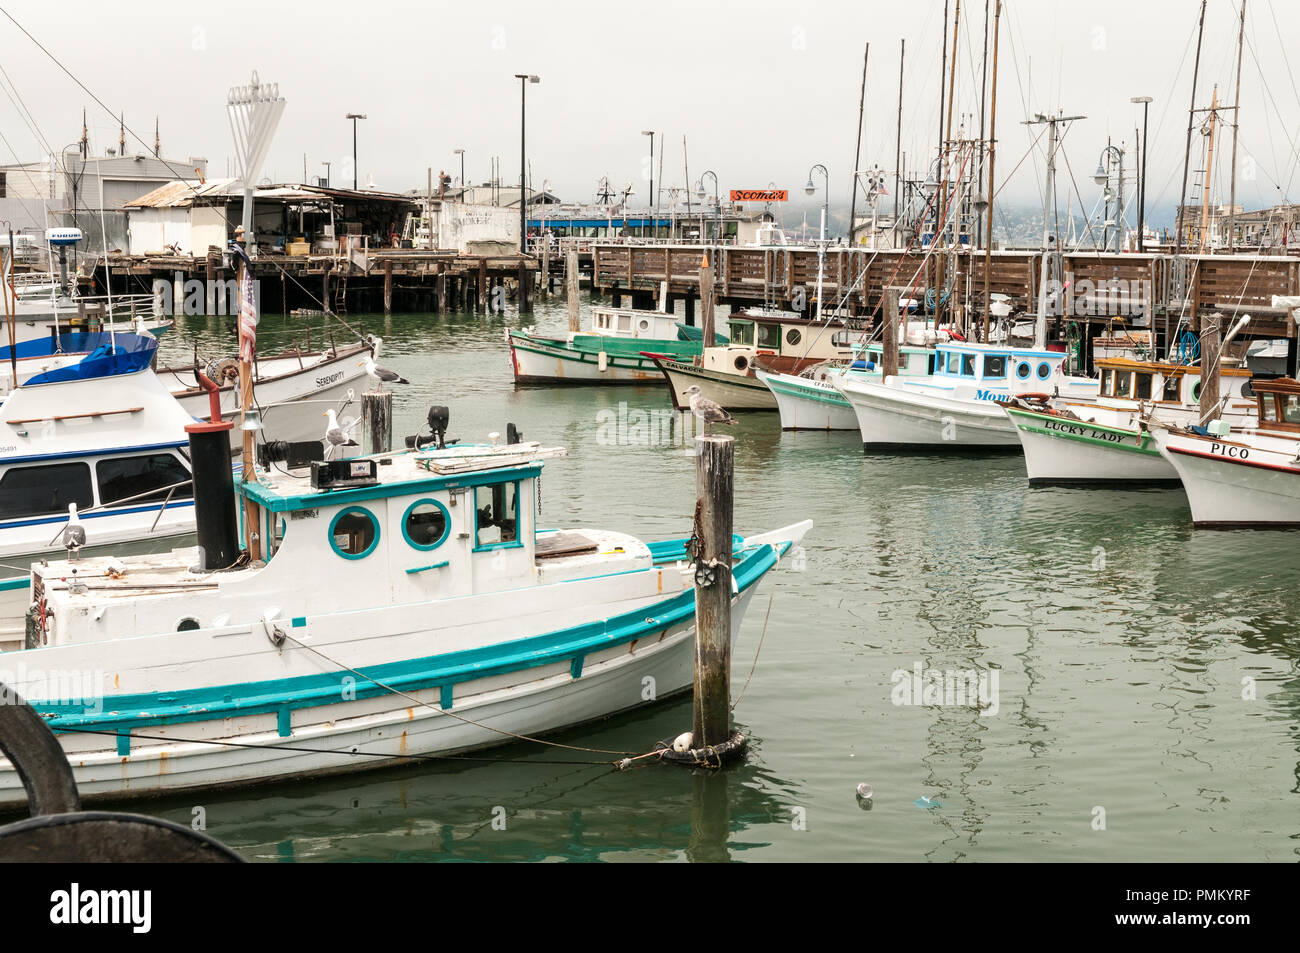 SAN FRANCISCO, CALIFORNIA, July 30th 2018. Small wooden fishing boats tied up near pier 39 in San Francisco. Stock Photo